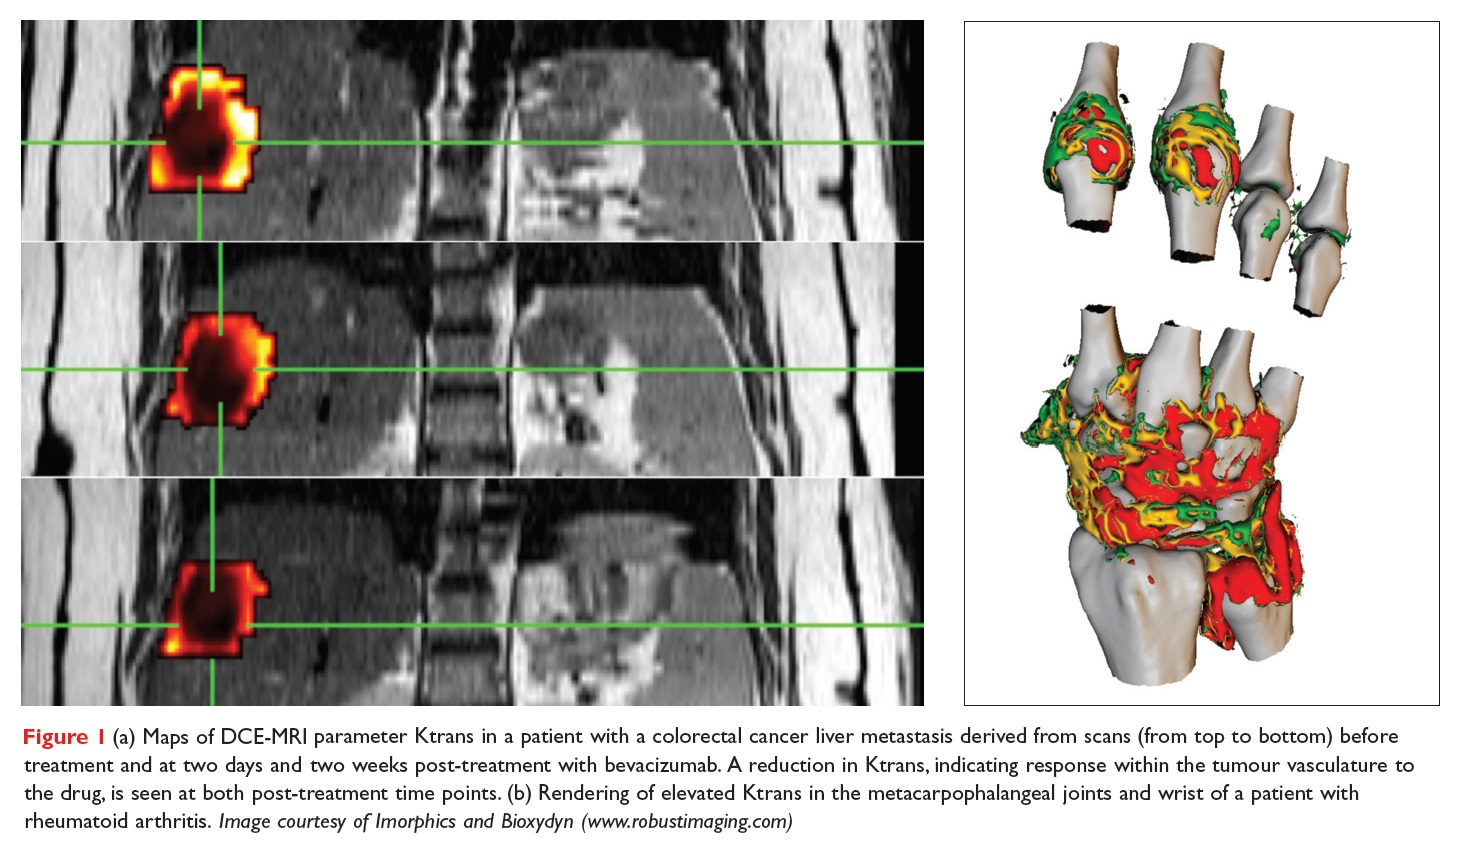 Figure 1 Maps of DCE-MRI parameter Ktrans in a patient with a colorectal cancer liver metastasis derived from scans